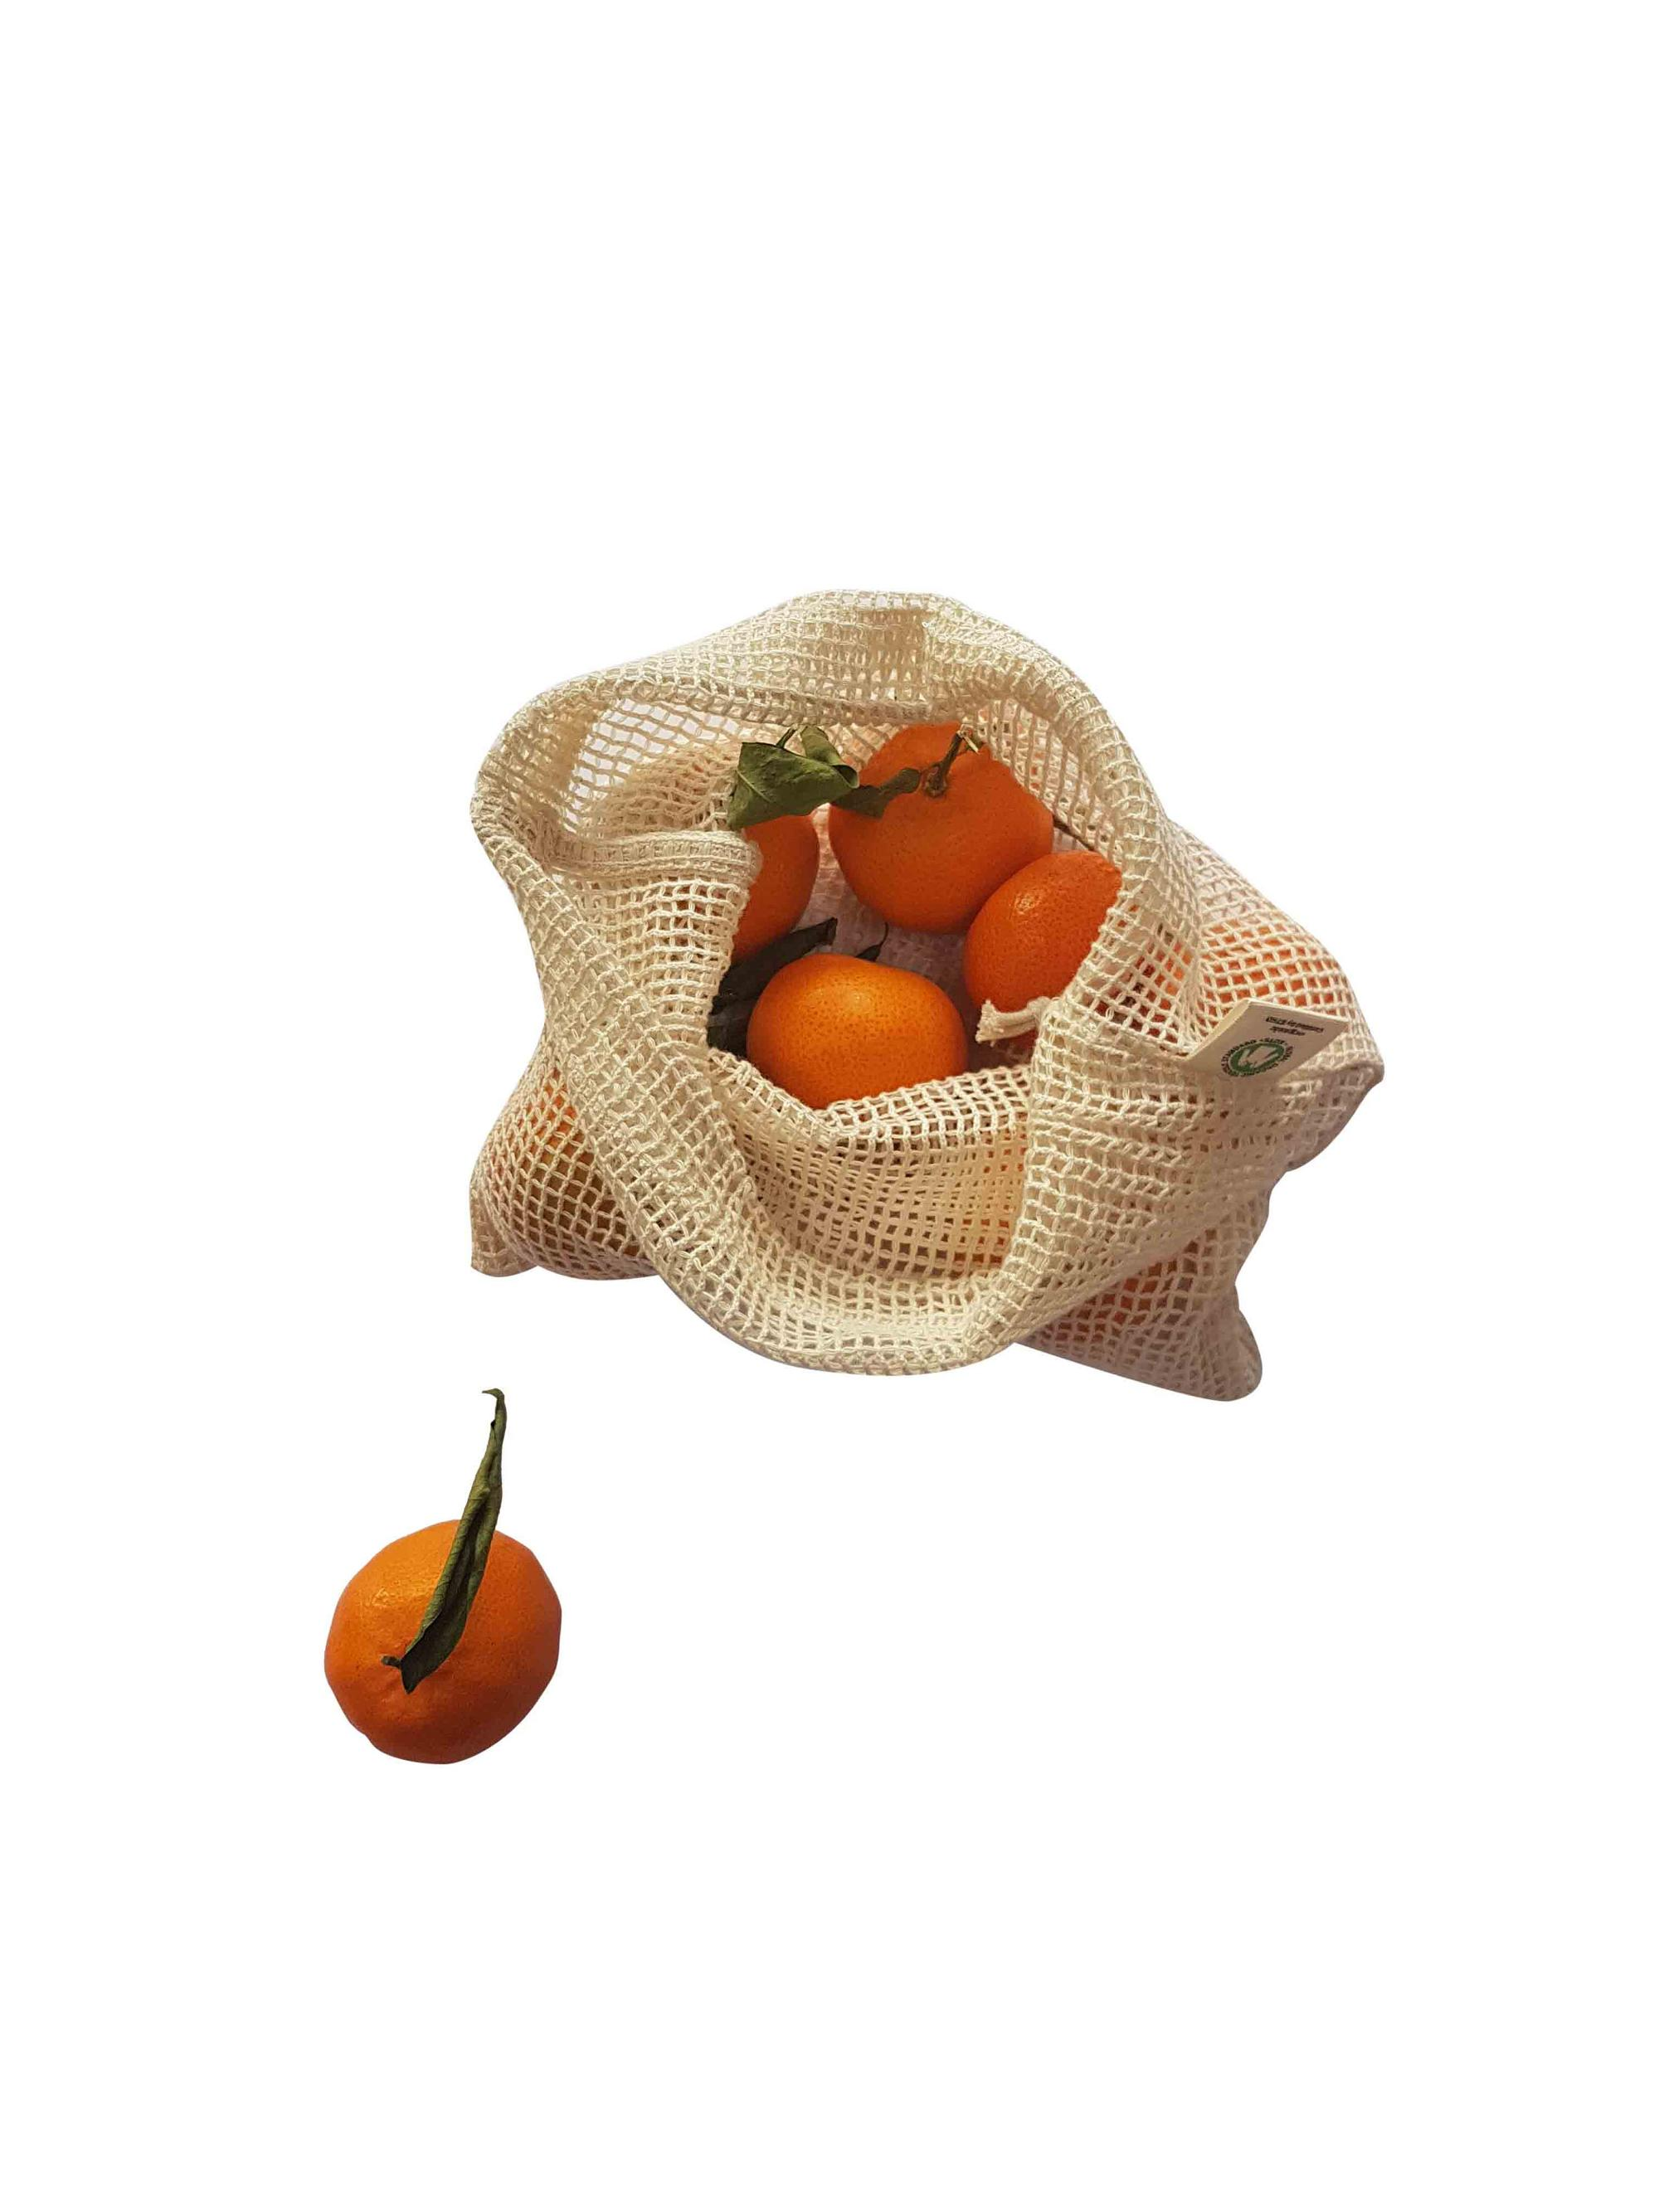 mesh bags,mesh grocery bag,cotton mesh bag